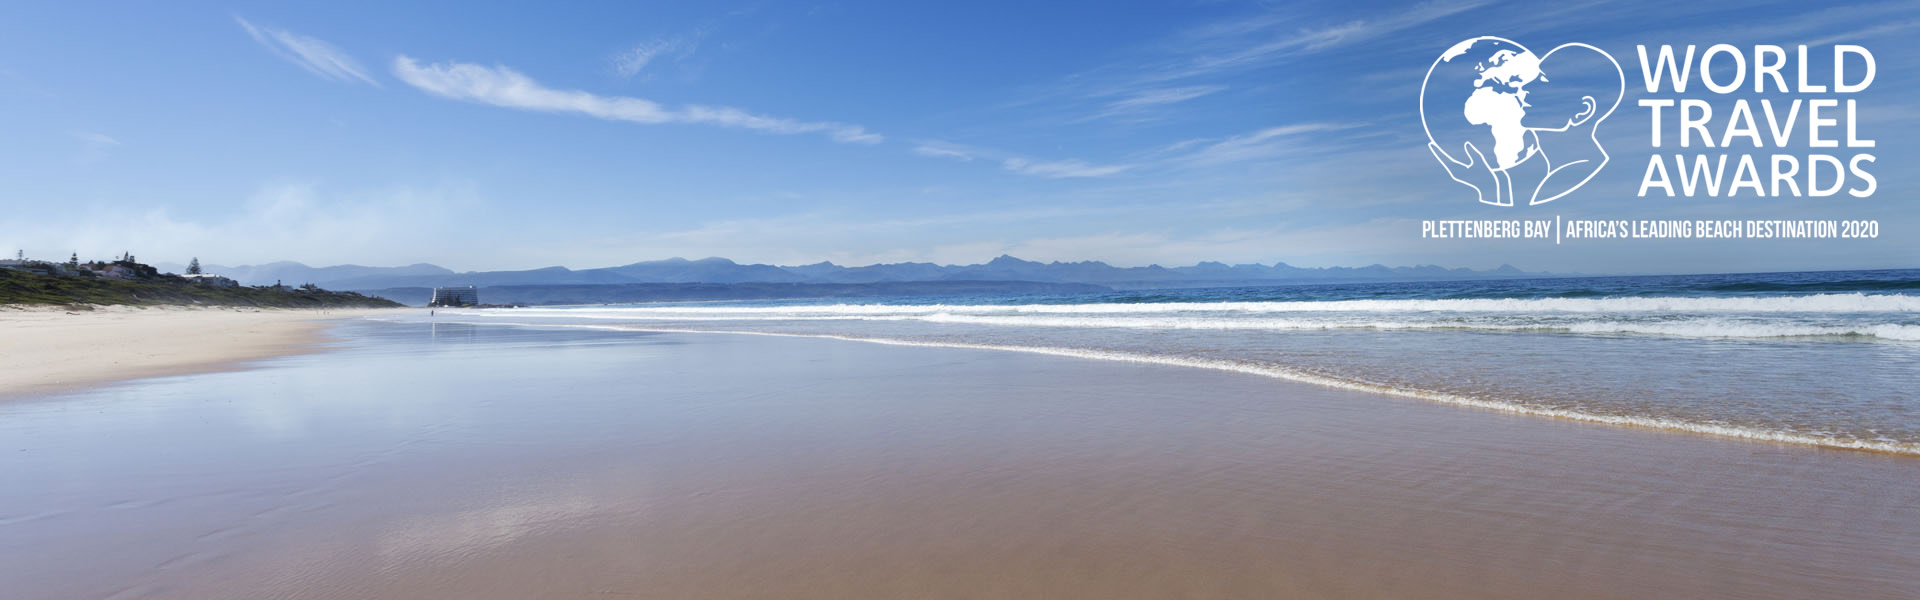 The beaches in Plett have won the town the award of Africa's Leading Beach Destination for 2020 at the World Travel Awards